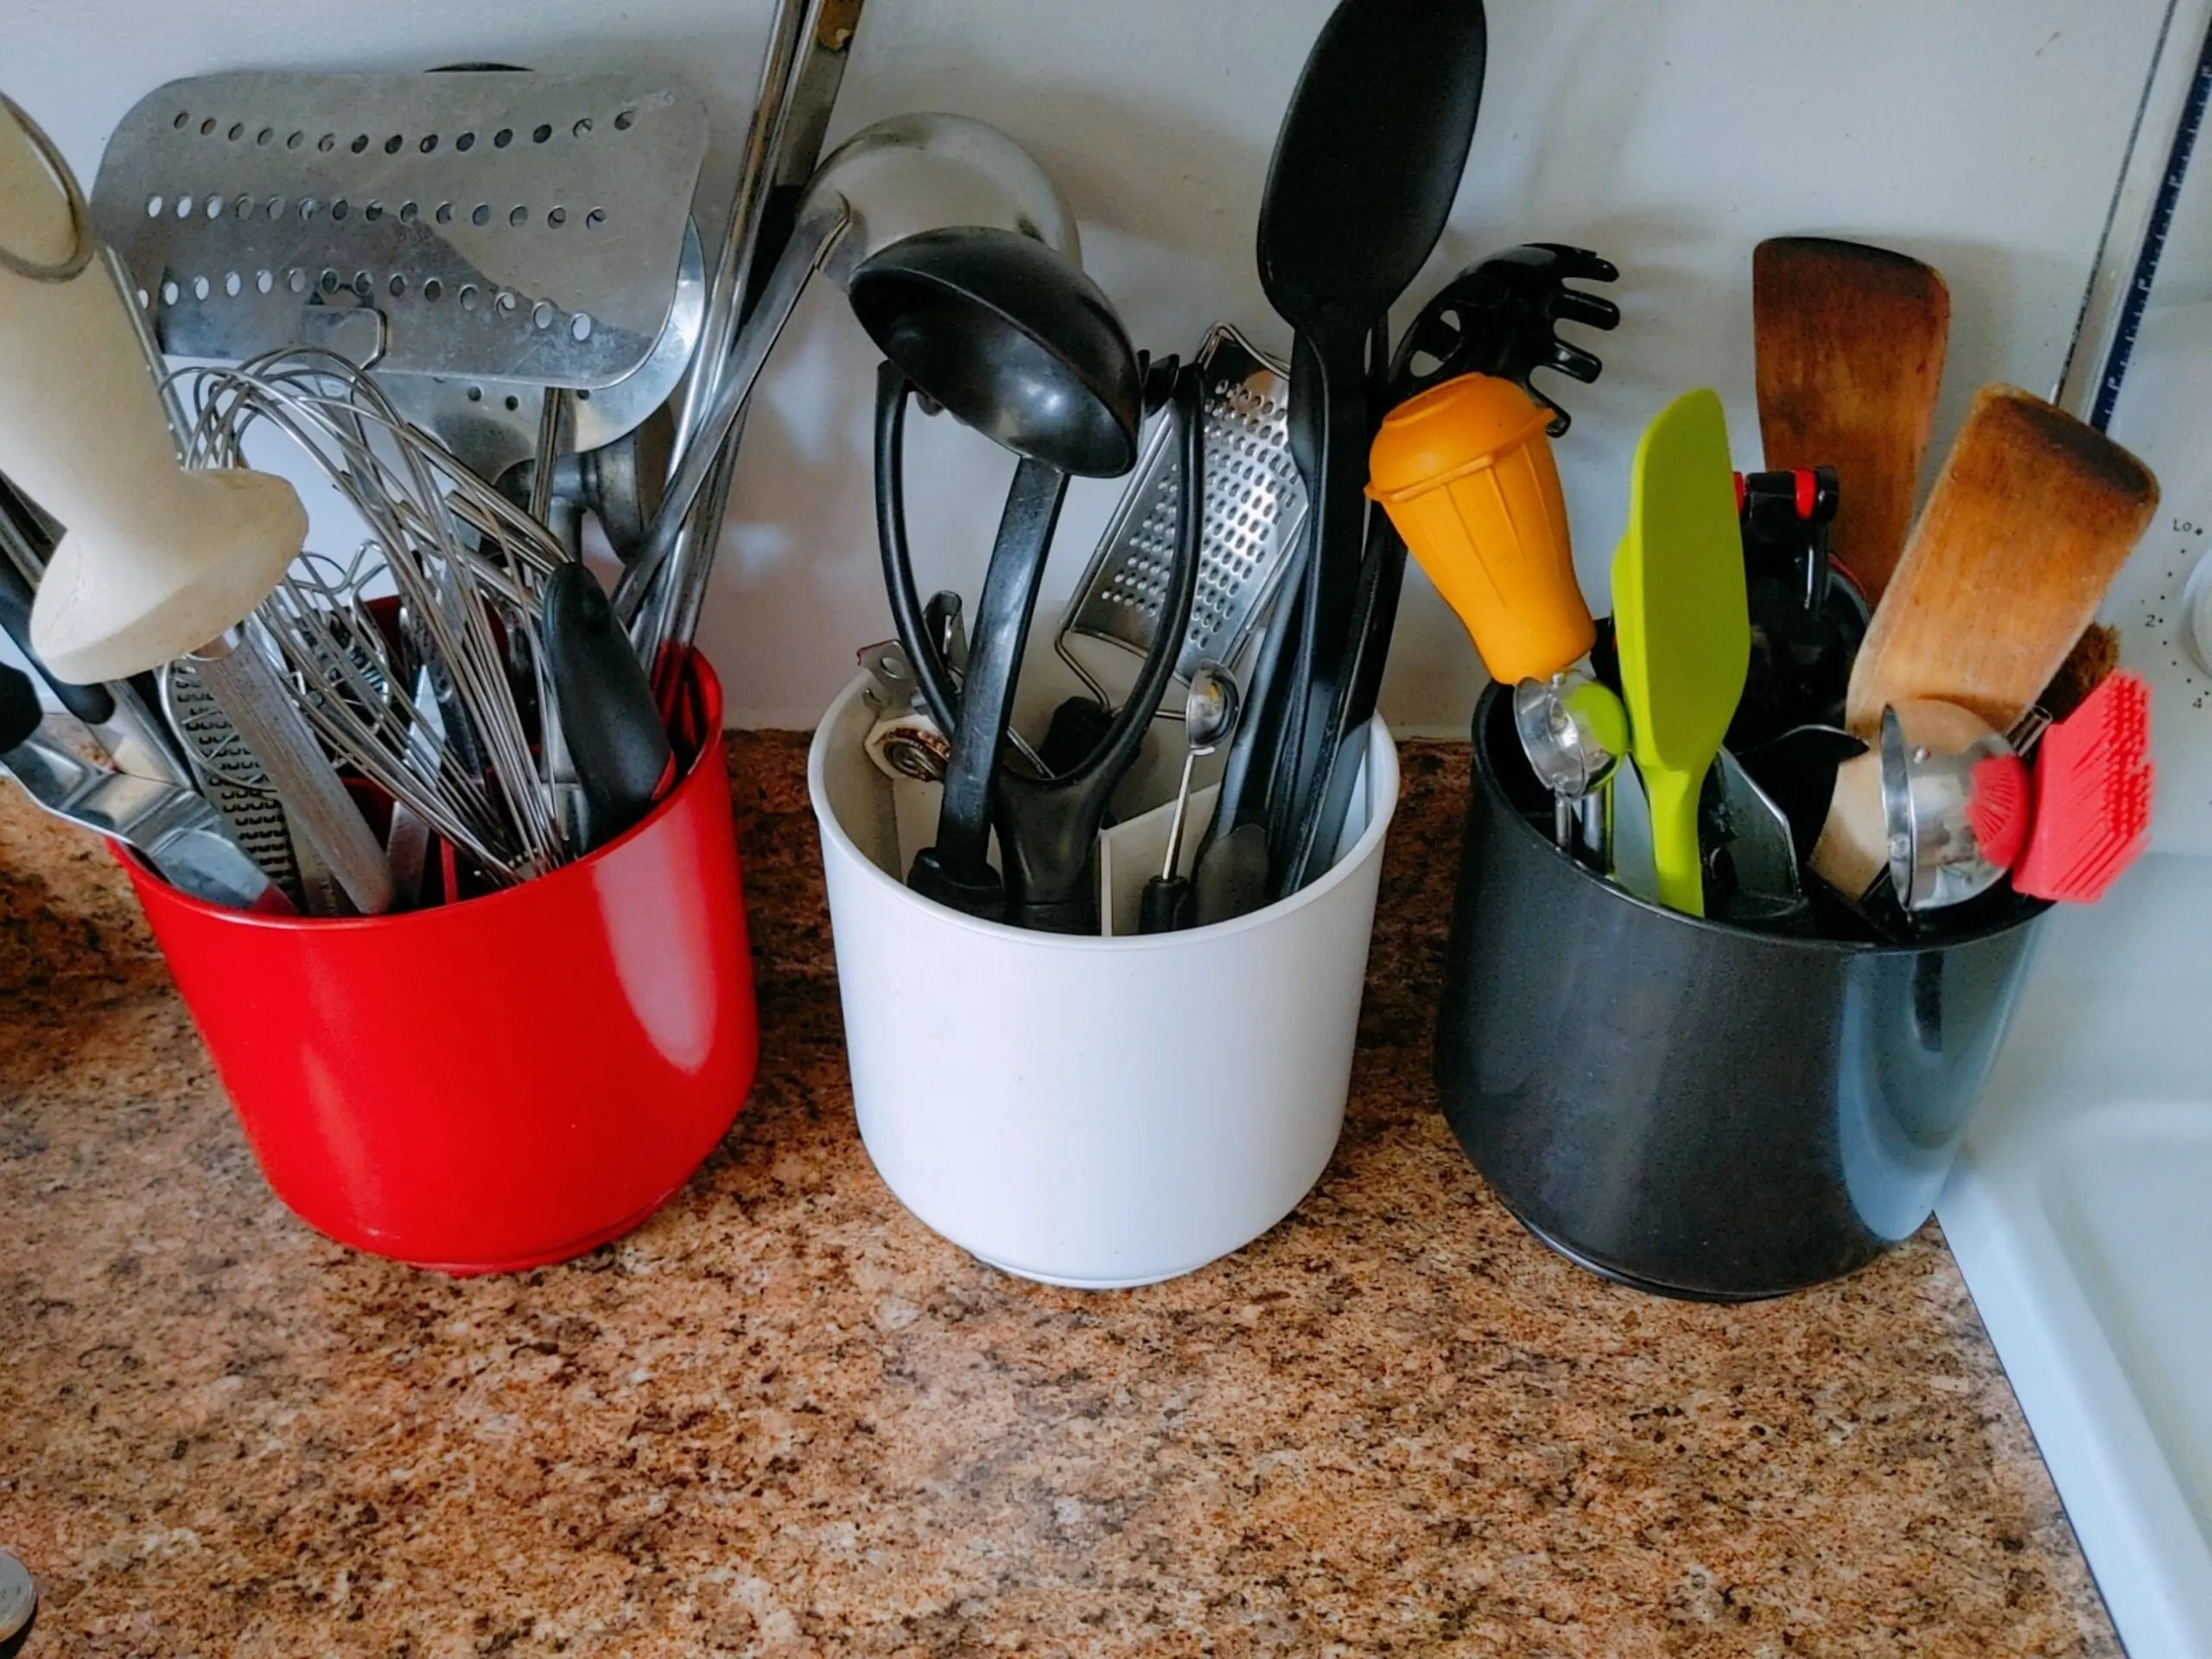 kitchen utensils in a holder